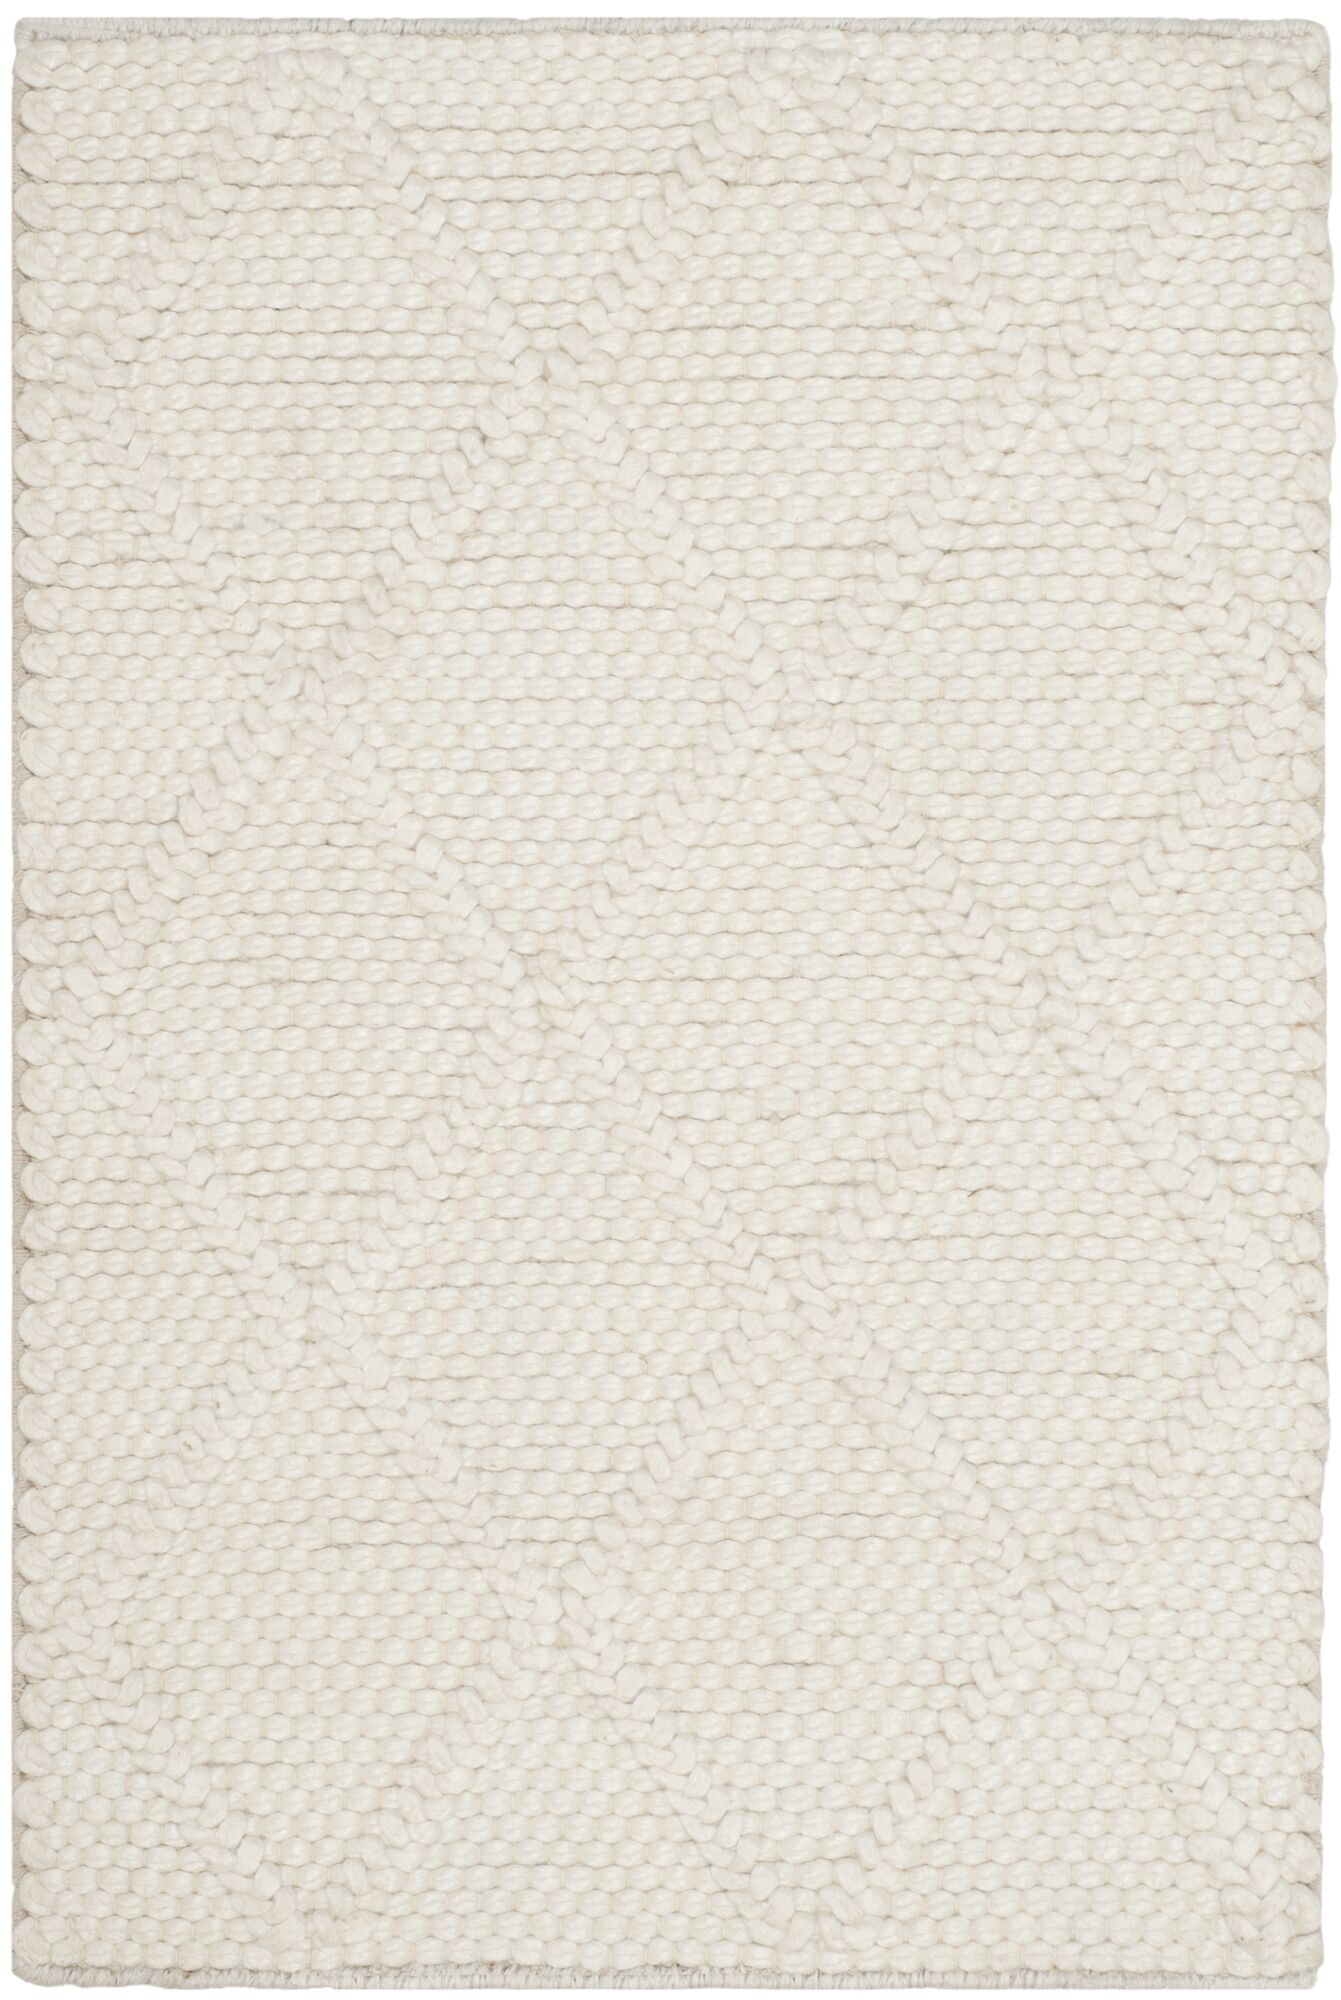 Millie Hand Woven Ivory Area Rug Rug Size: Rectangle 8' x 10'